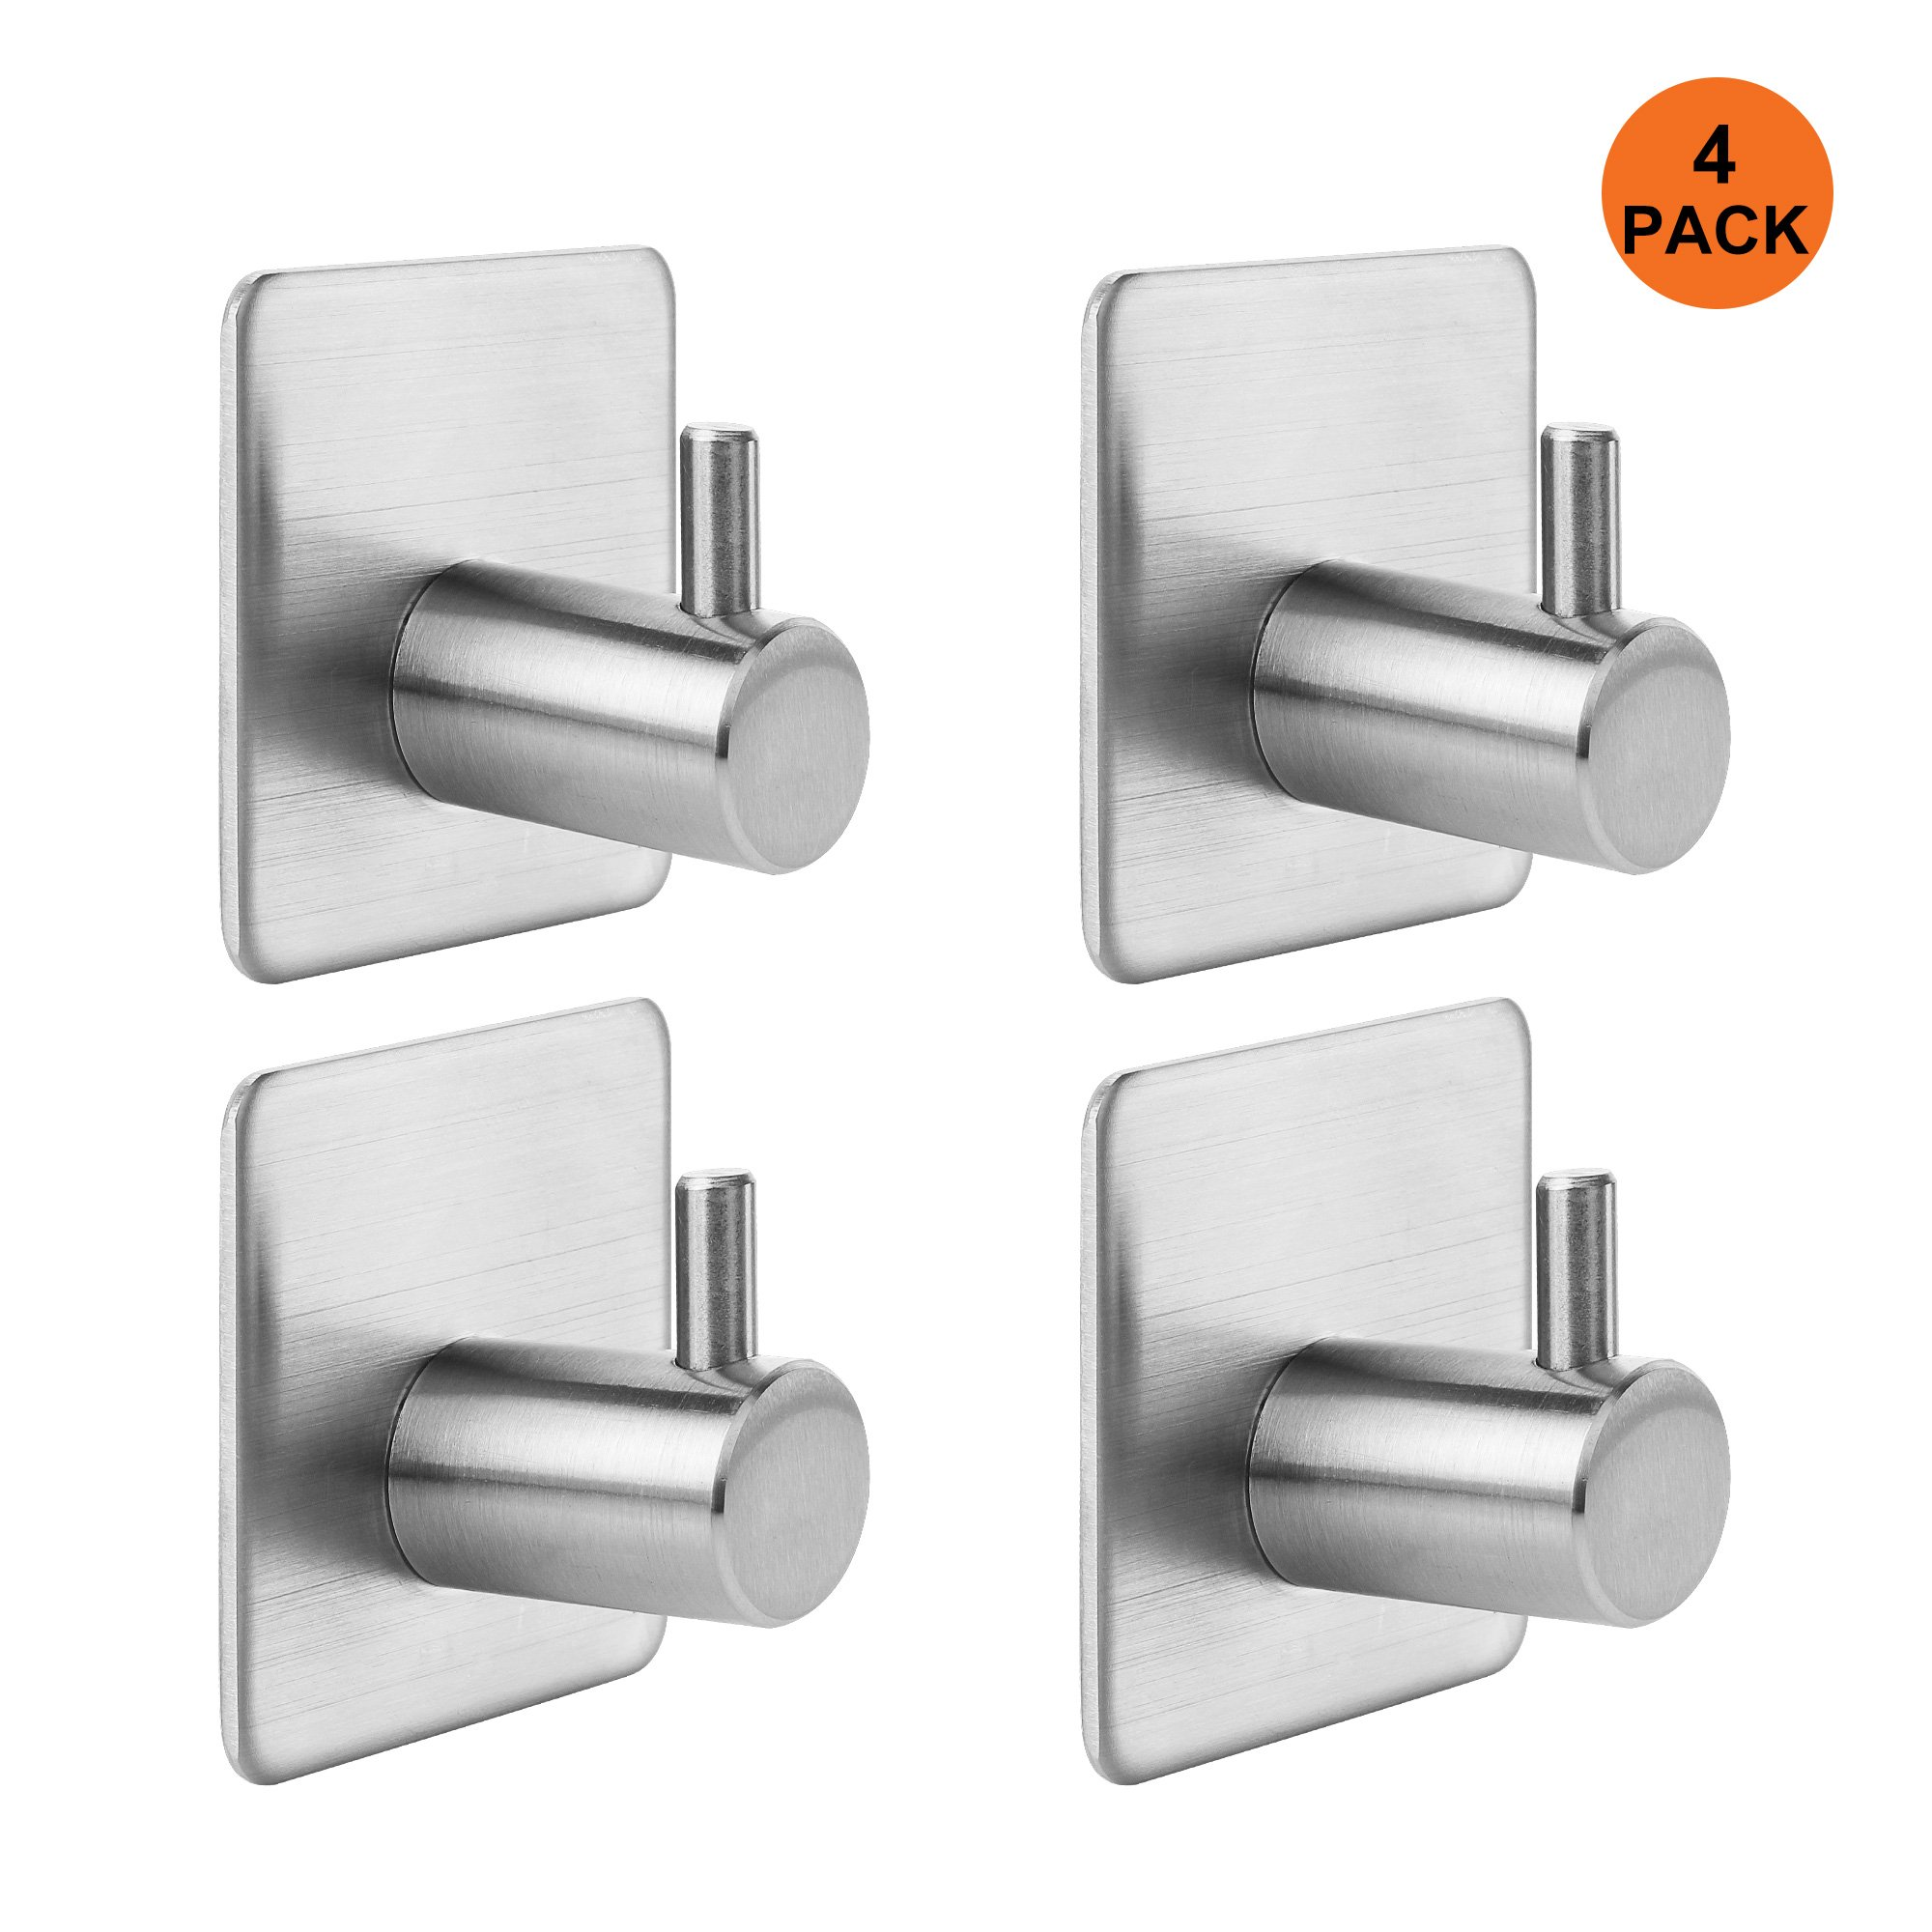 KANGORA Bathroom Towel Hook Bath, Shower & Kitchen | Strong Adhesive Backing Wall Door | Contemporary, Stainless Steel Design | Easy Installation (4 - Pack) by KANGORA